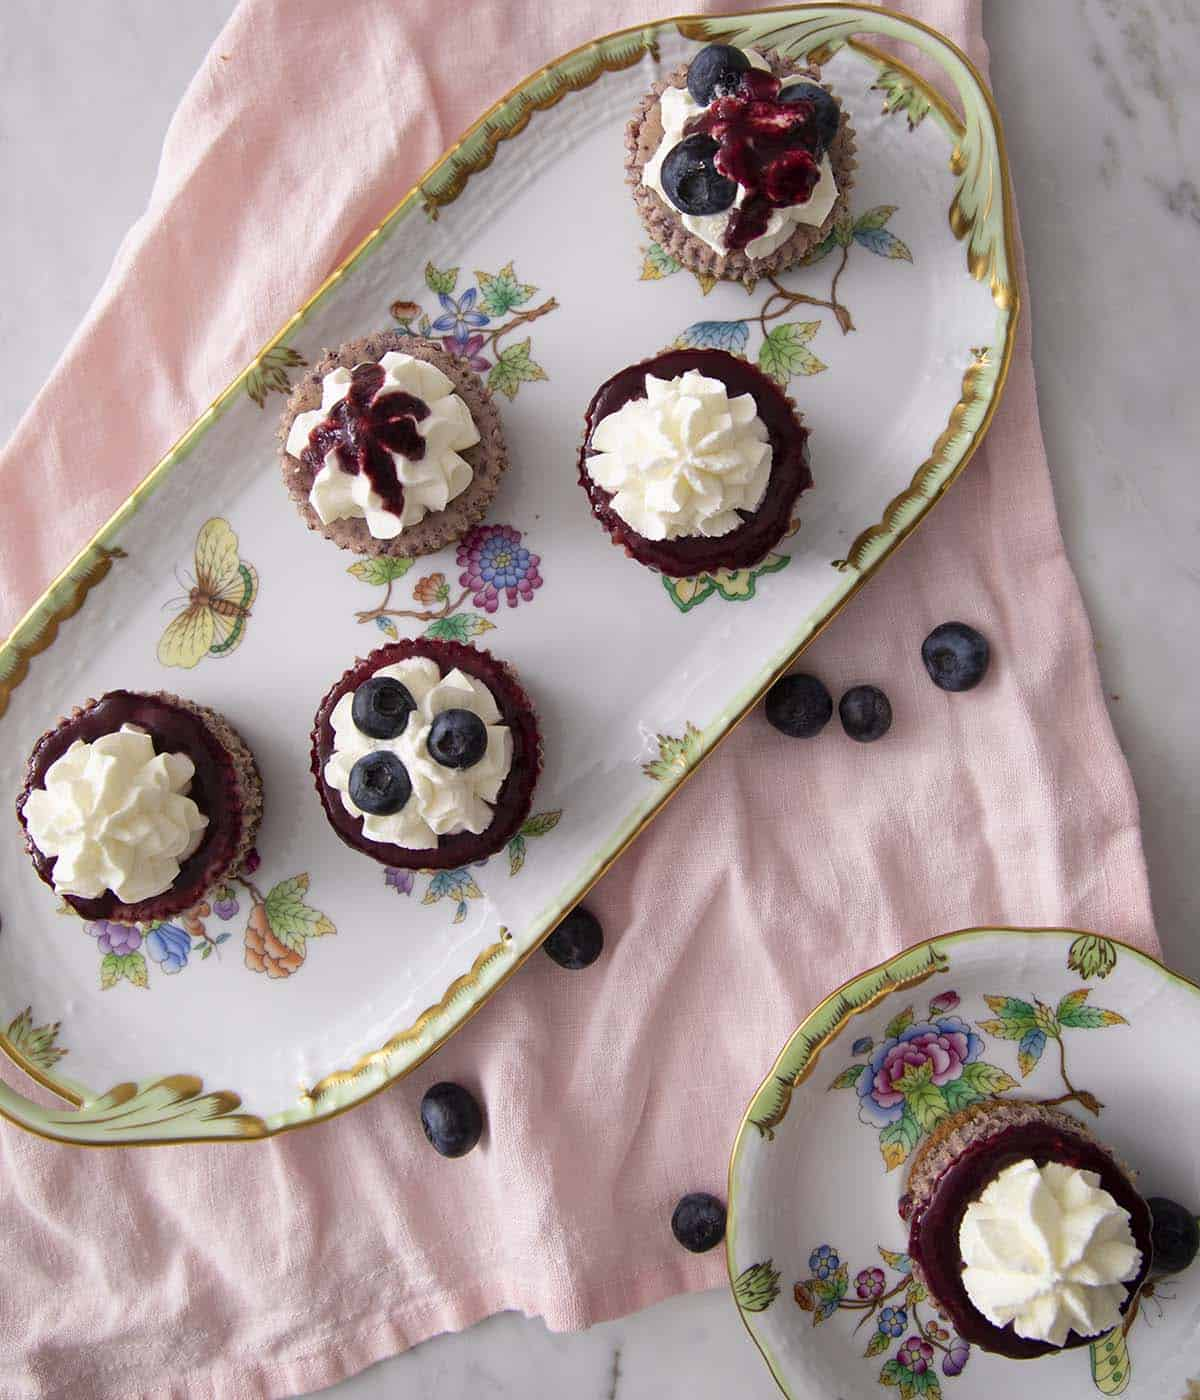 Porcelain dished with Blueberry mini cheesecakes decorated in different ways.